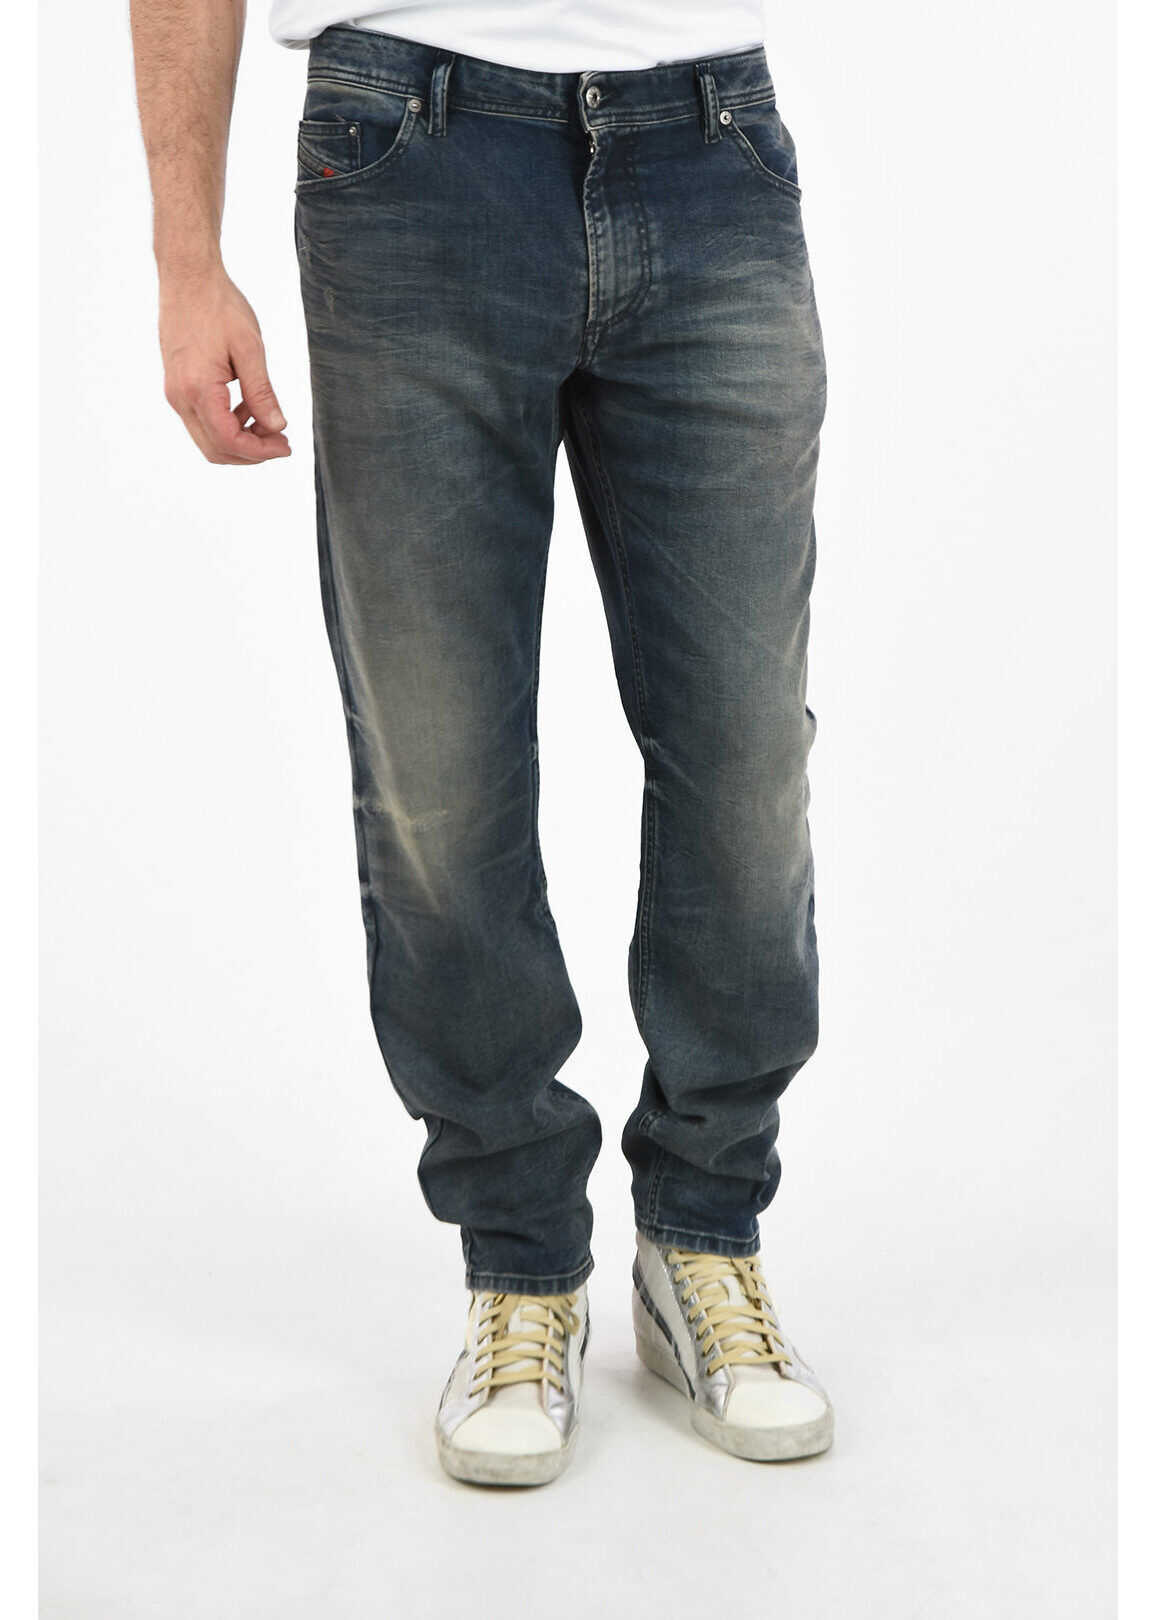 Diesel 19cm Vintage Effect THAVAR-XP Slim Fit Jeans L32 BLUE imagine